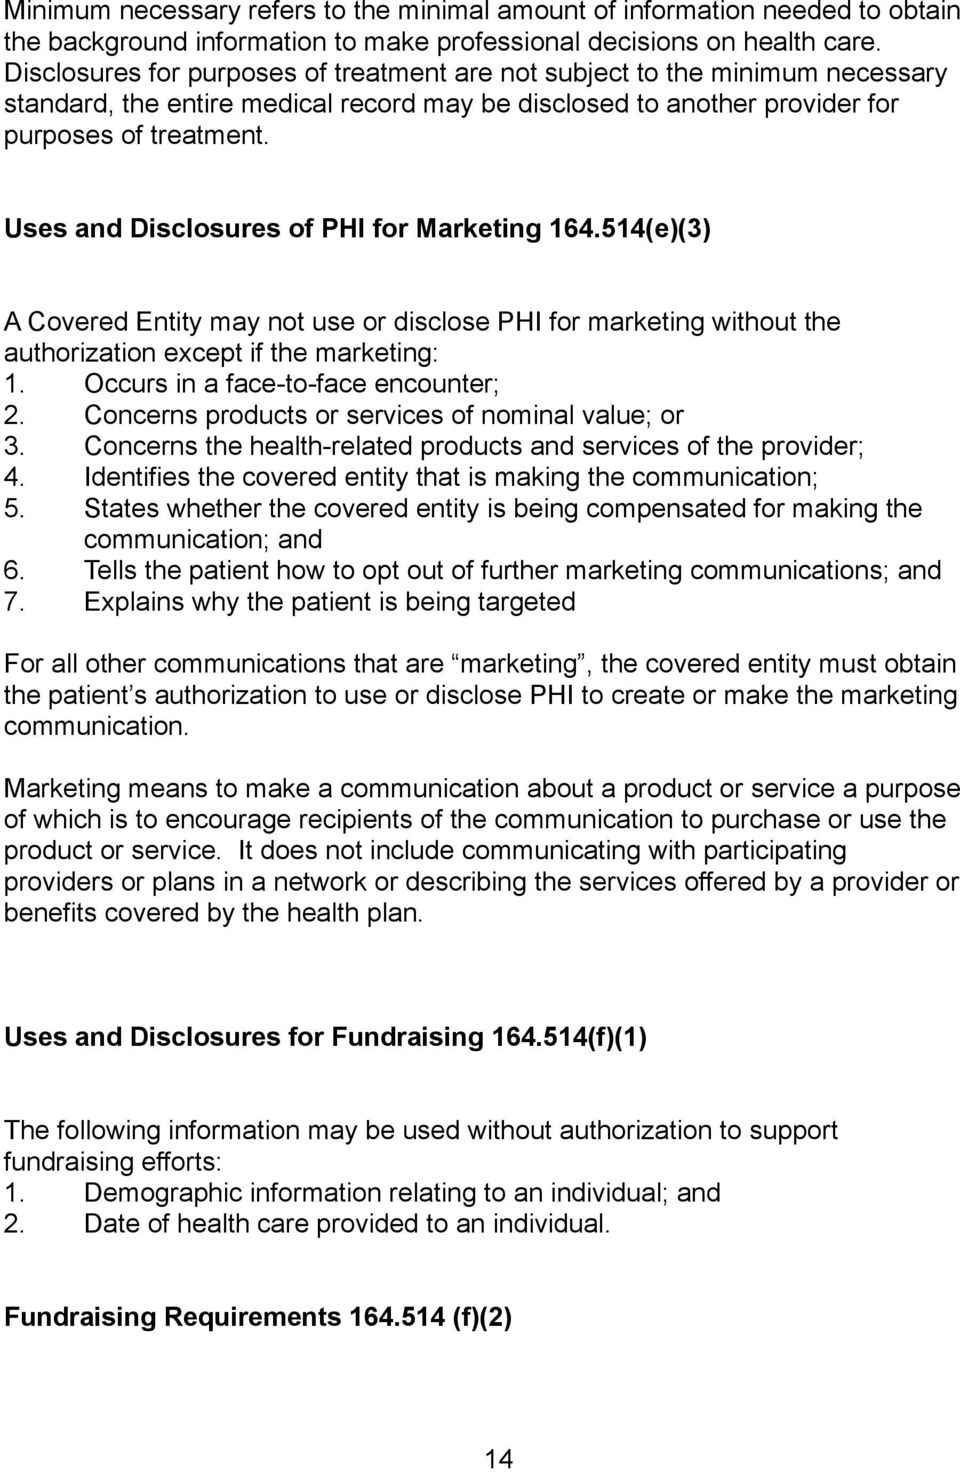 Uses and Disclosures of PHI for Marketing 164.514(e)(3) A Covered Entity may not use or disclose PHI for marketing without the authorization except if the marketing: 1.